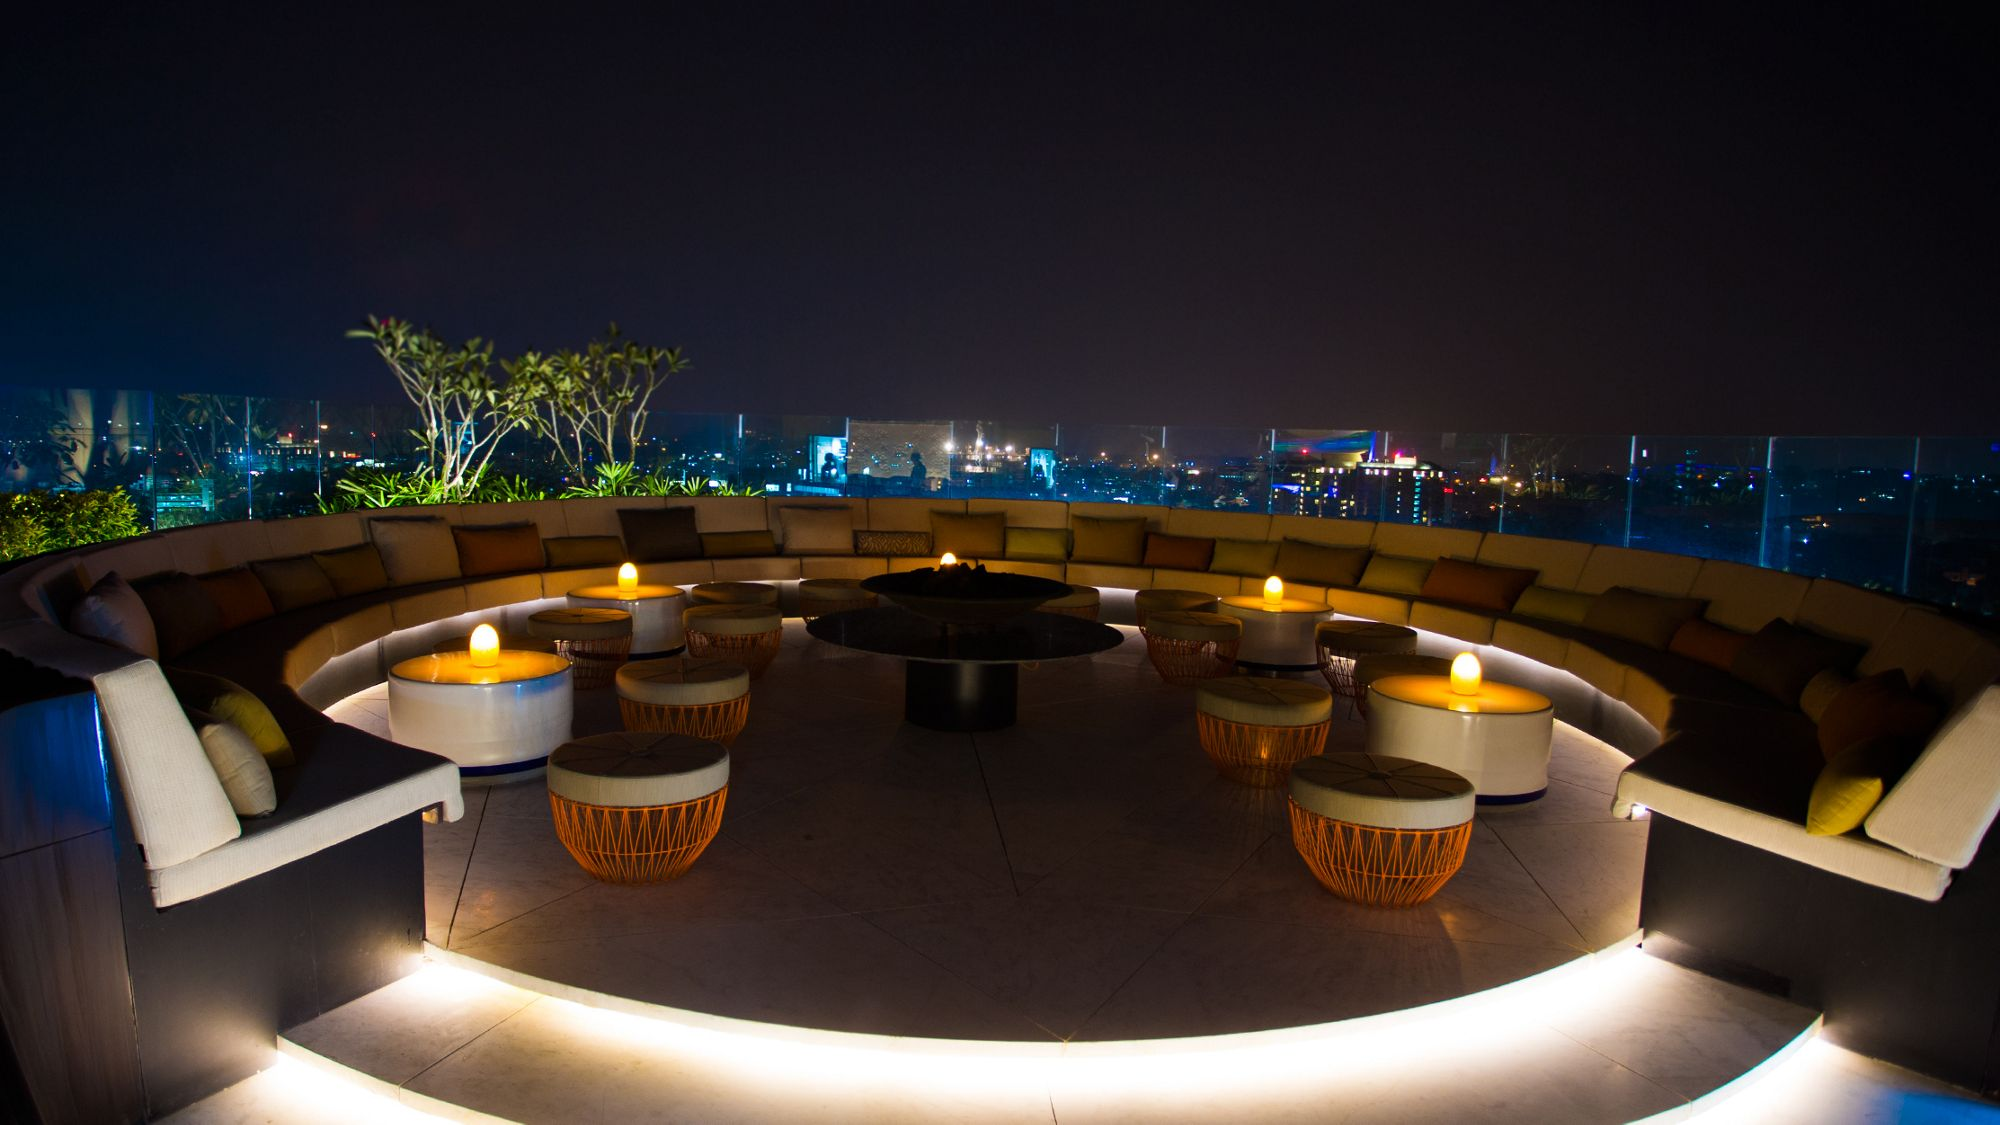 Circular rooftop bar with banquette seating, small round coffee tables and impressive skyline city views at night